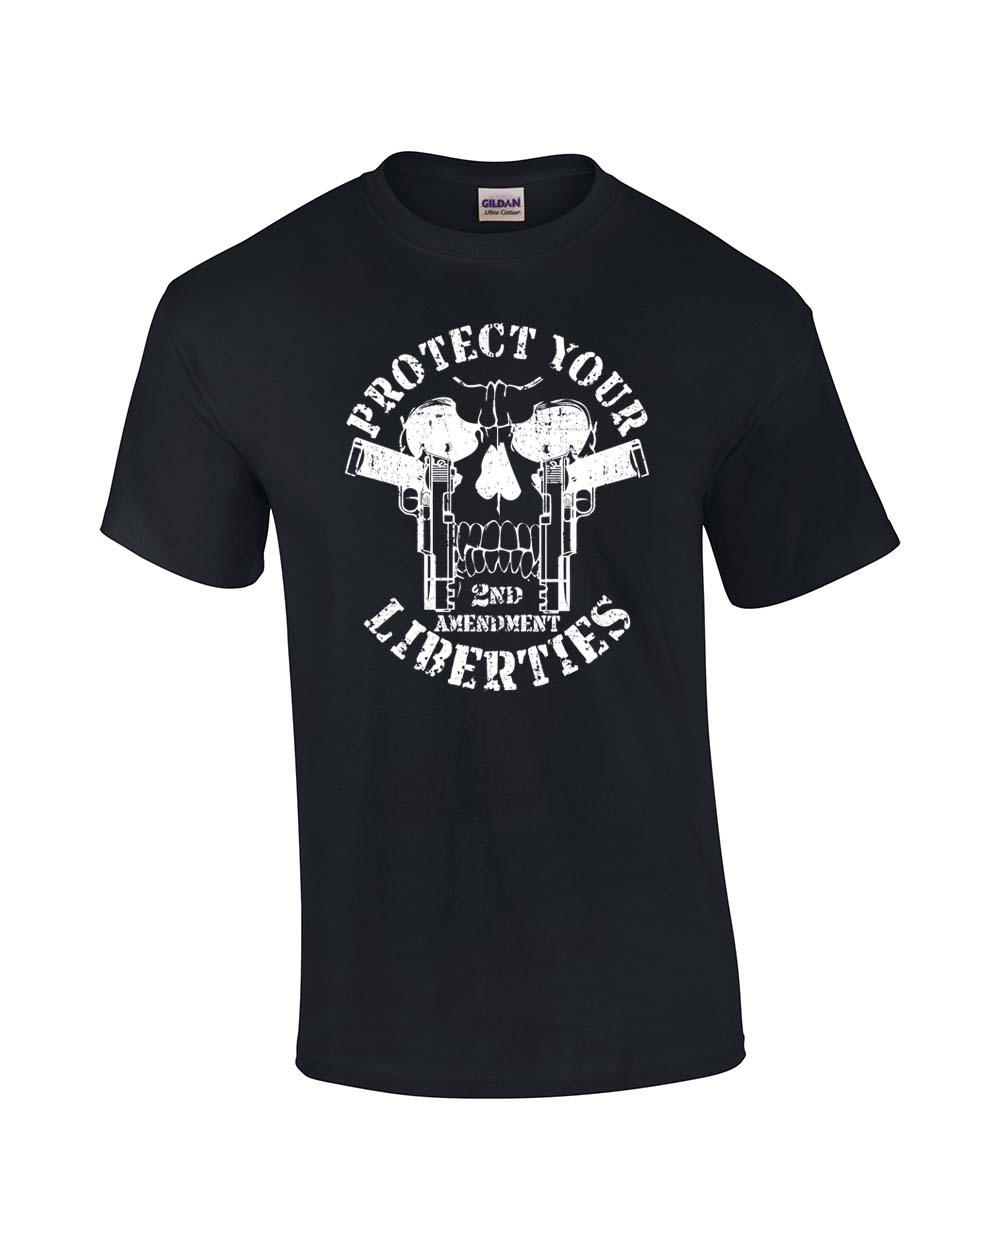 2nd Amendment T-Shirt Protect Your Liberties